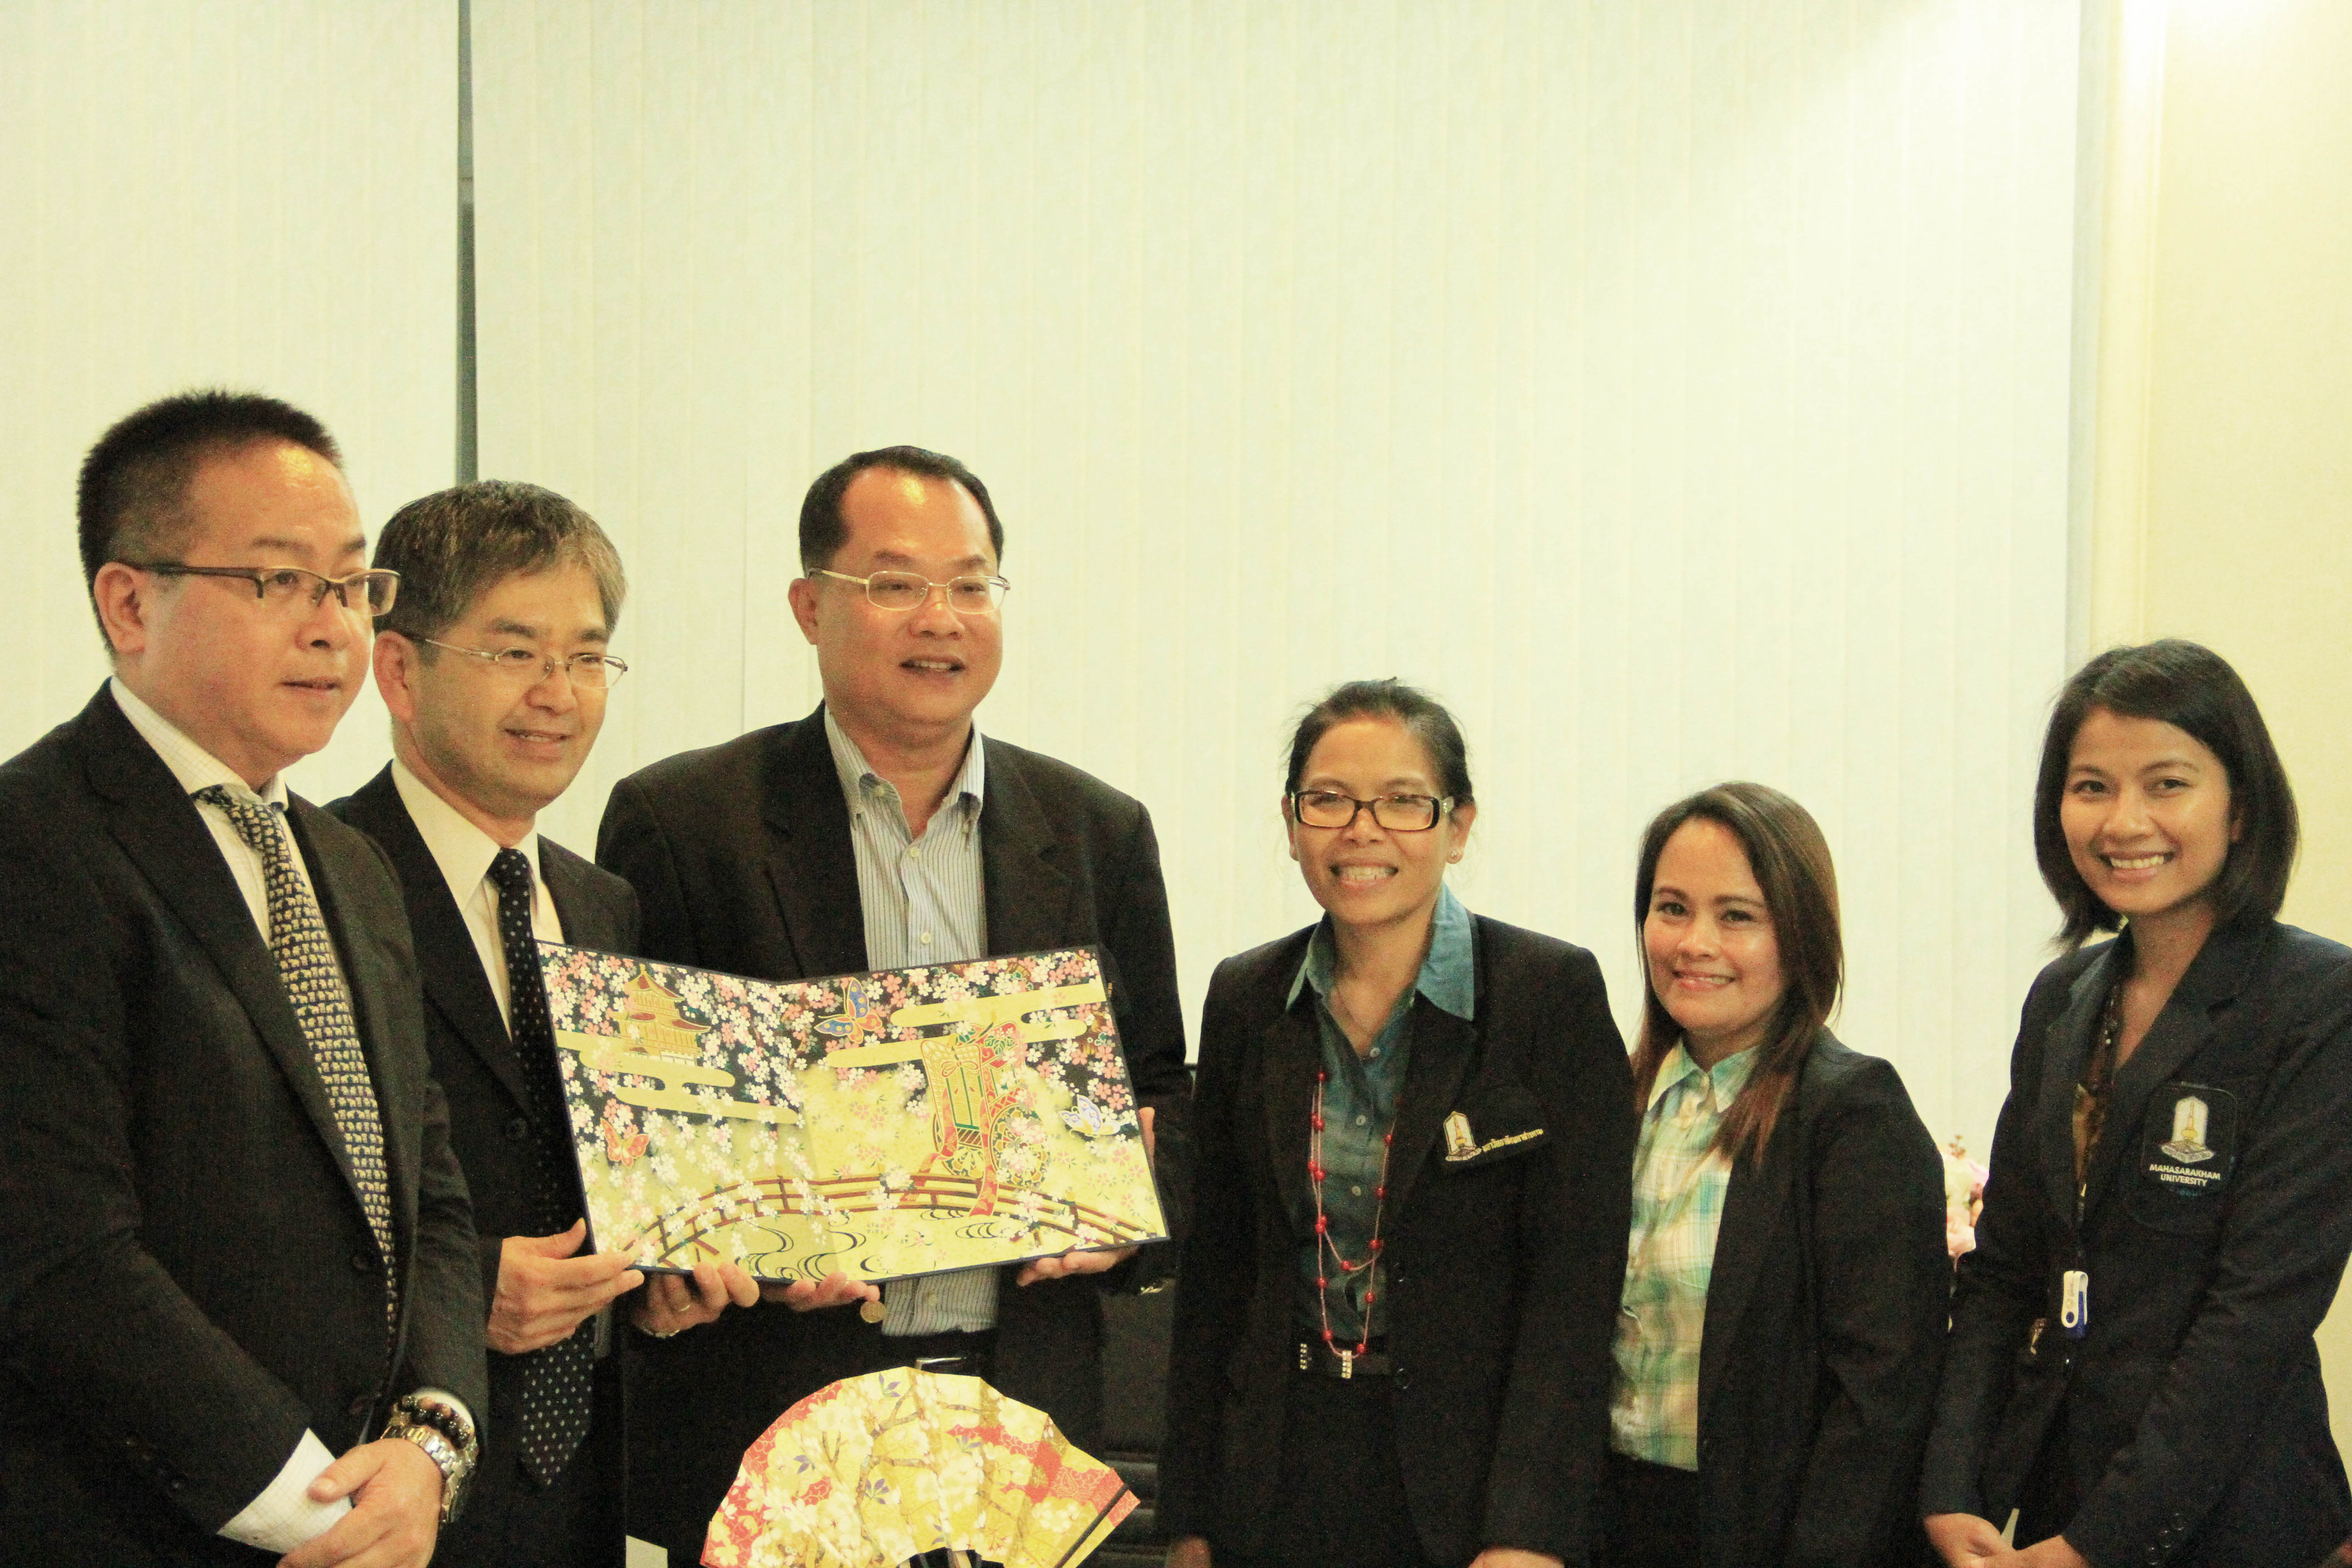 MSU Welcomed the Visitors from Kyoto Univ. of Foreign Studies